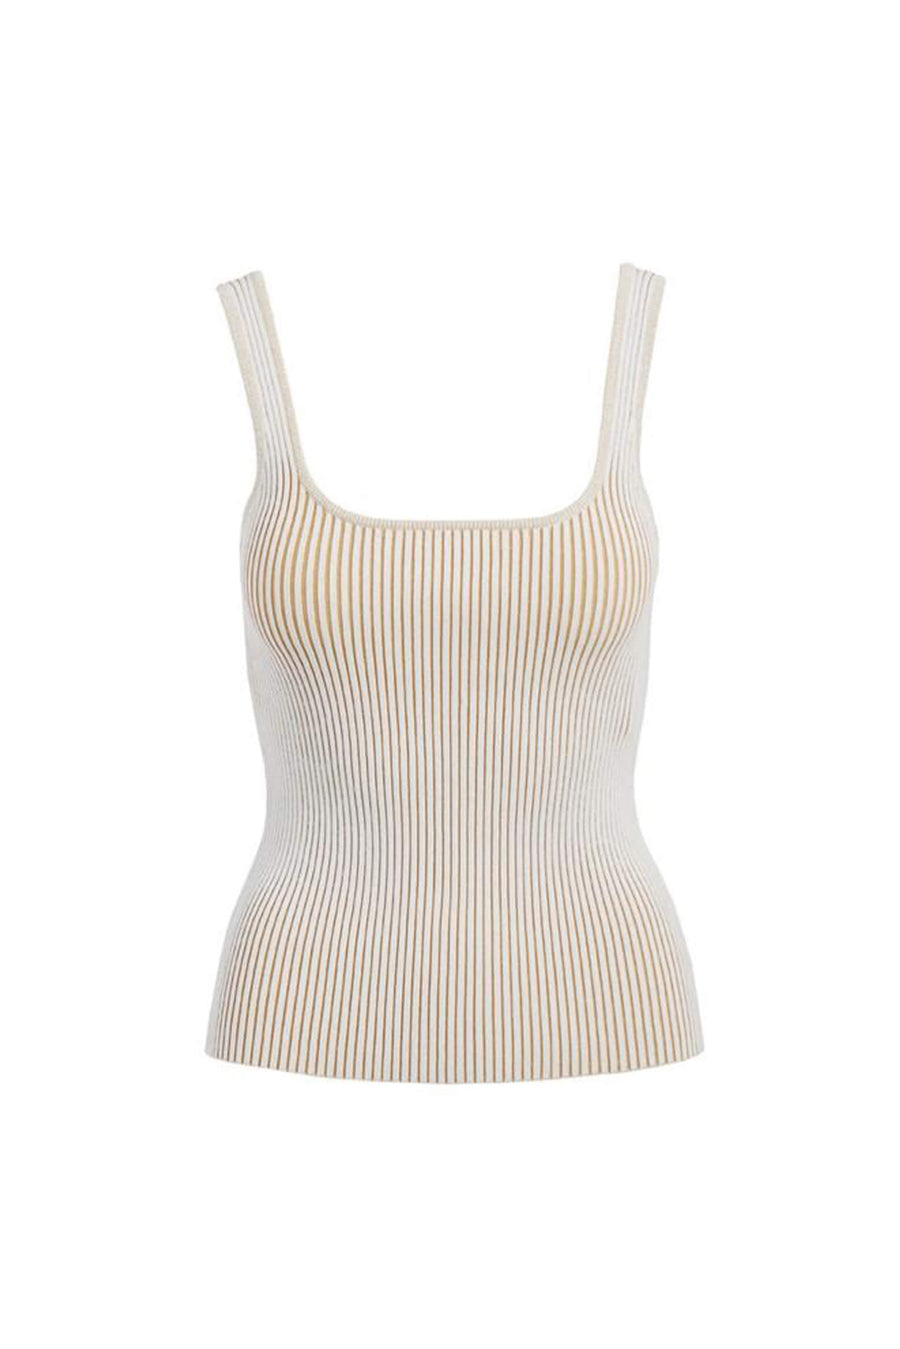 Anine Bing Josie Tank in Camel Ivory from The New Trend